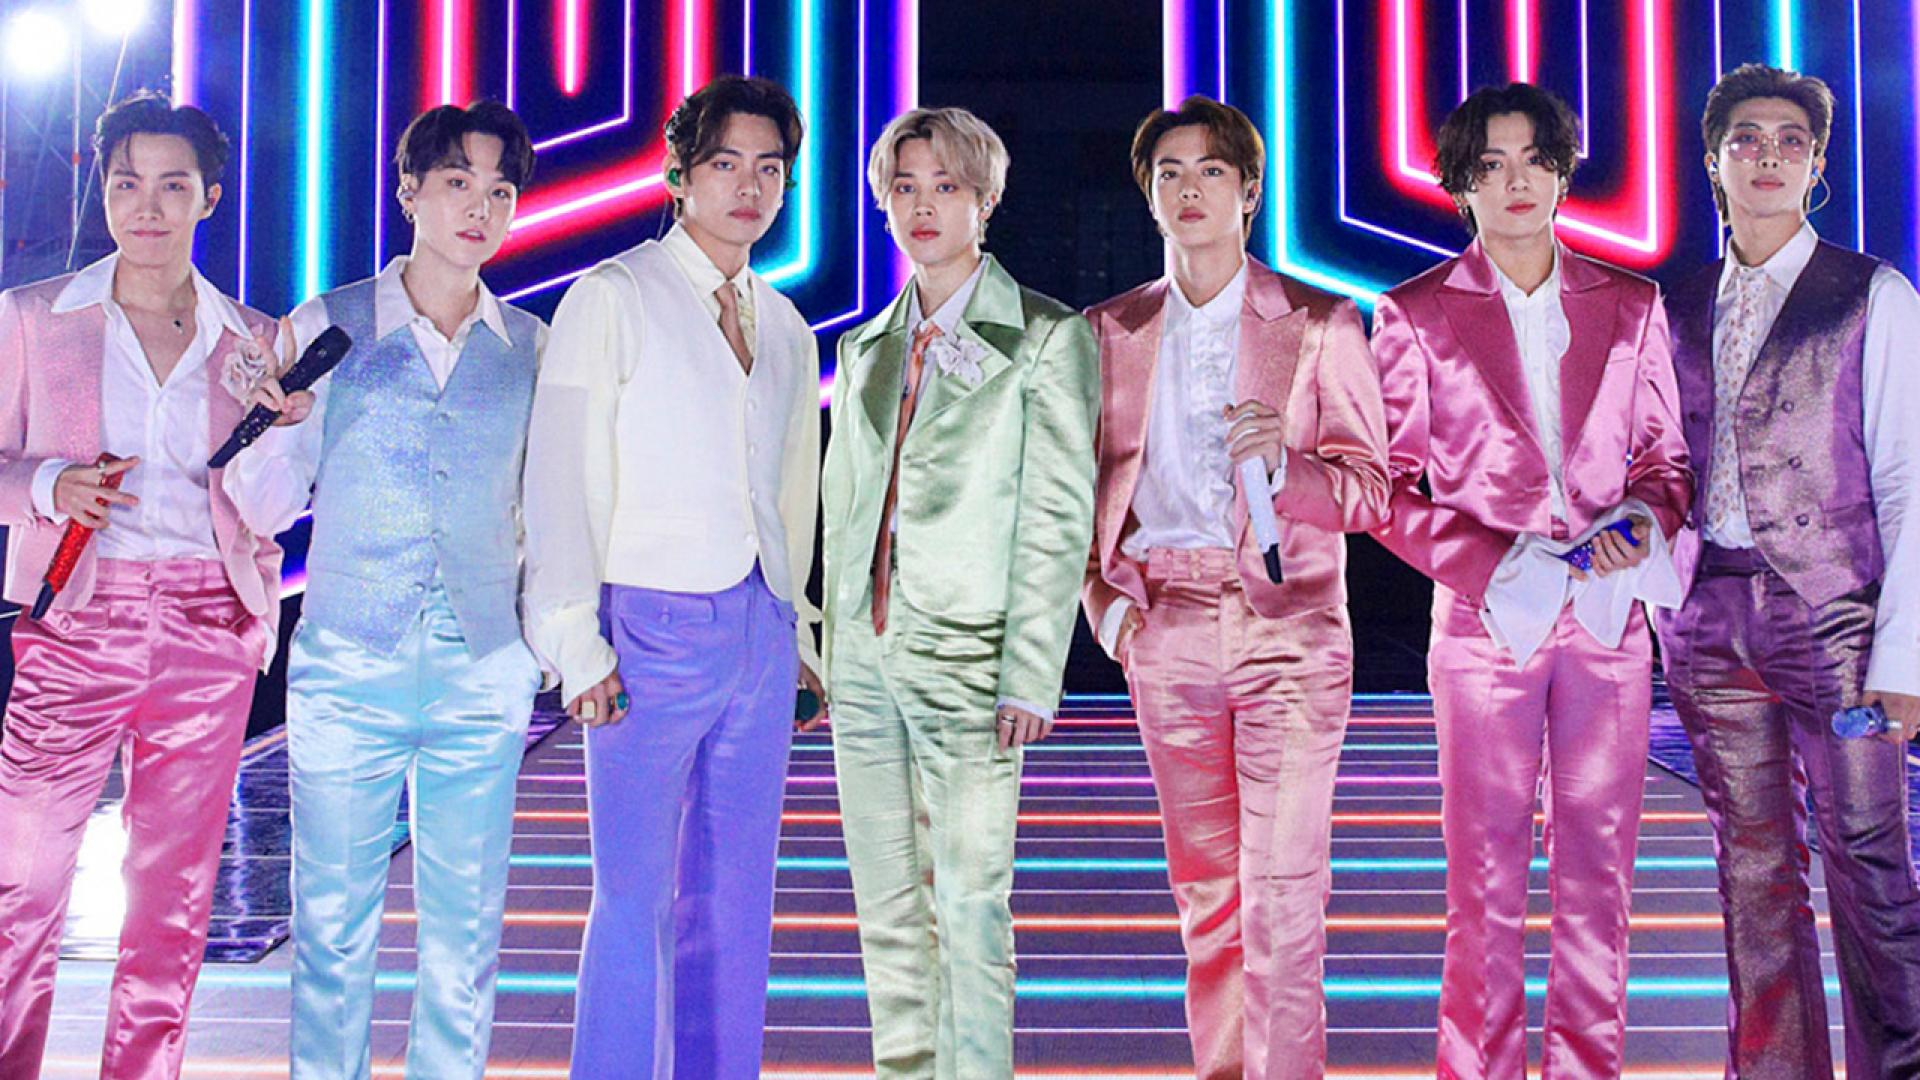 The new bill may just allow K-pop group BTS to extend their career by two years.